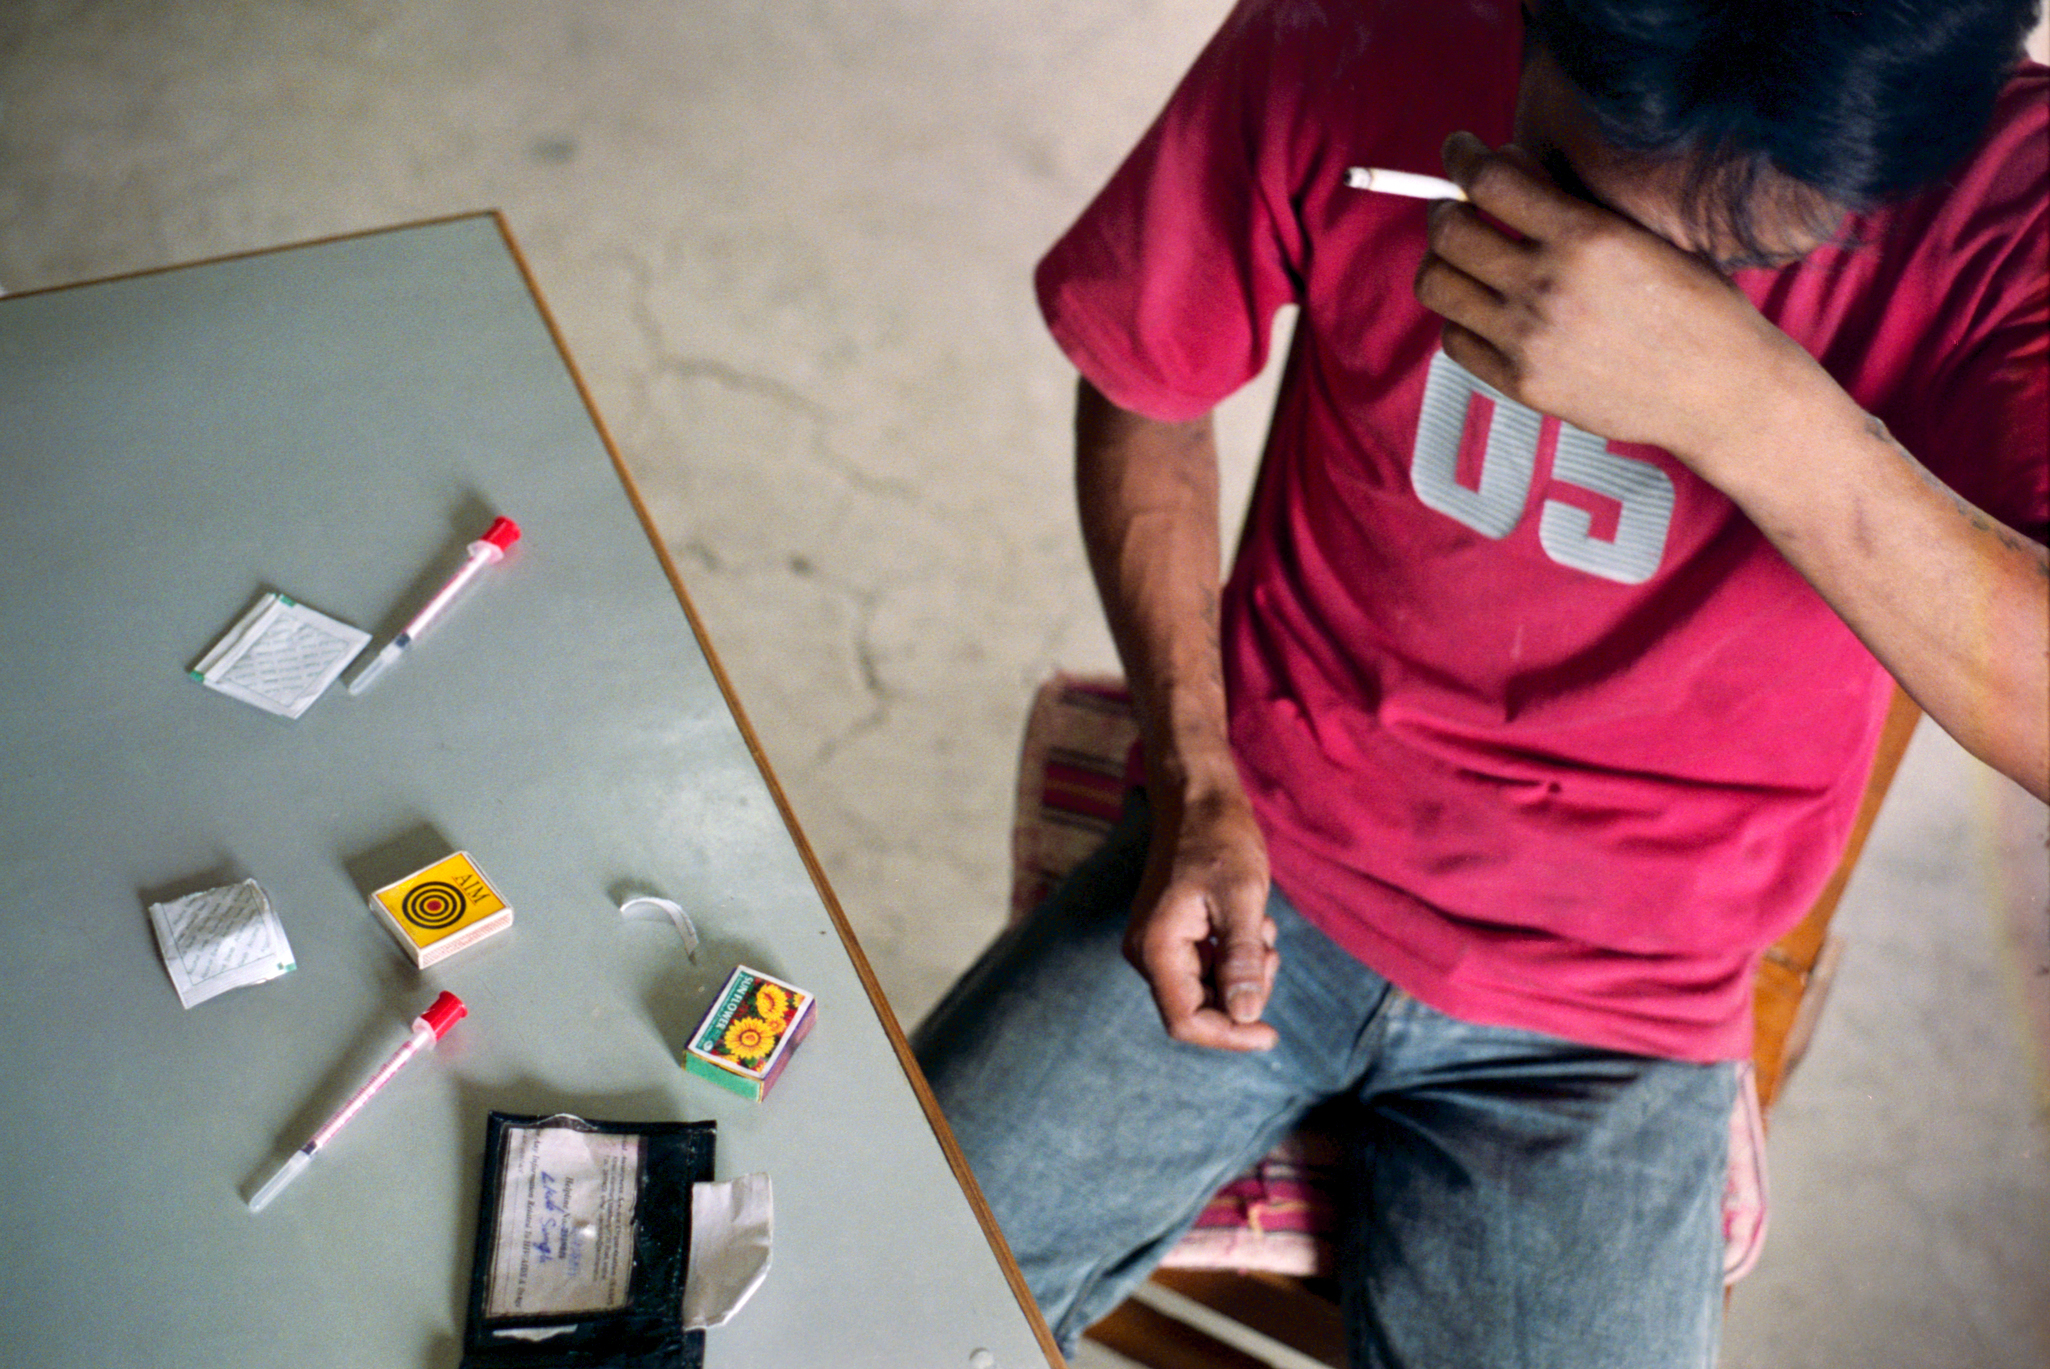 Heroin and needle use is common in NE India which borders Burma and is a major drug route.  HIV levels in this area are some of the highest in the country.  Many social service organizations have begun needle exchange programs to reduce the spread.  Kola will sometimes steal to get the 50 rupees (approx. one dollar) he needs to fix.